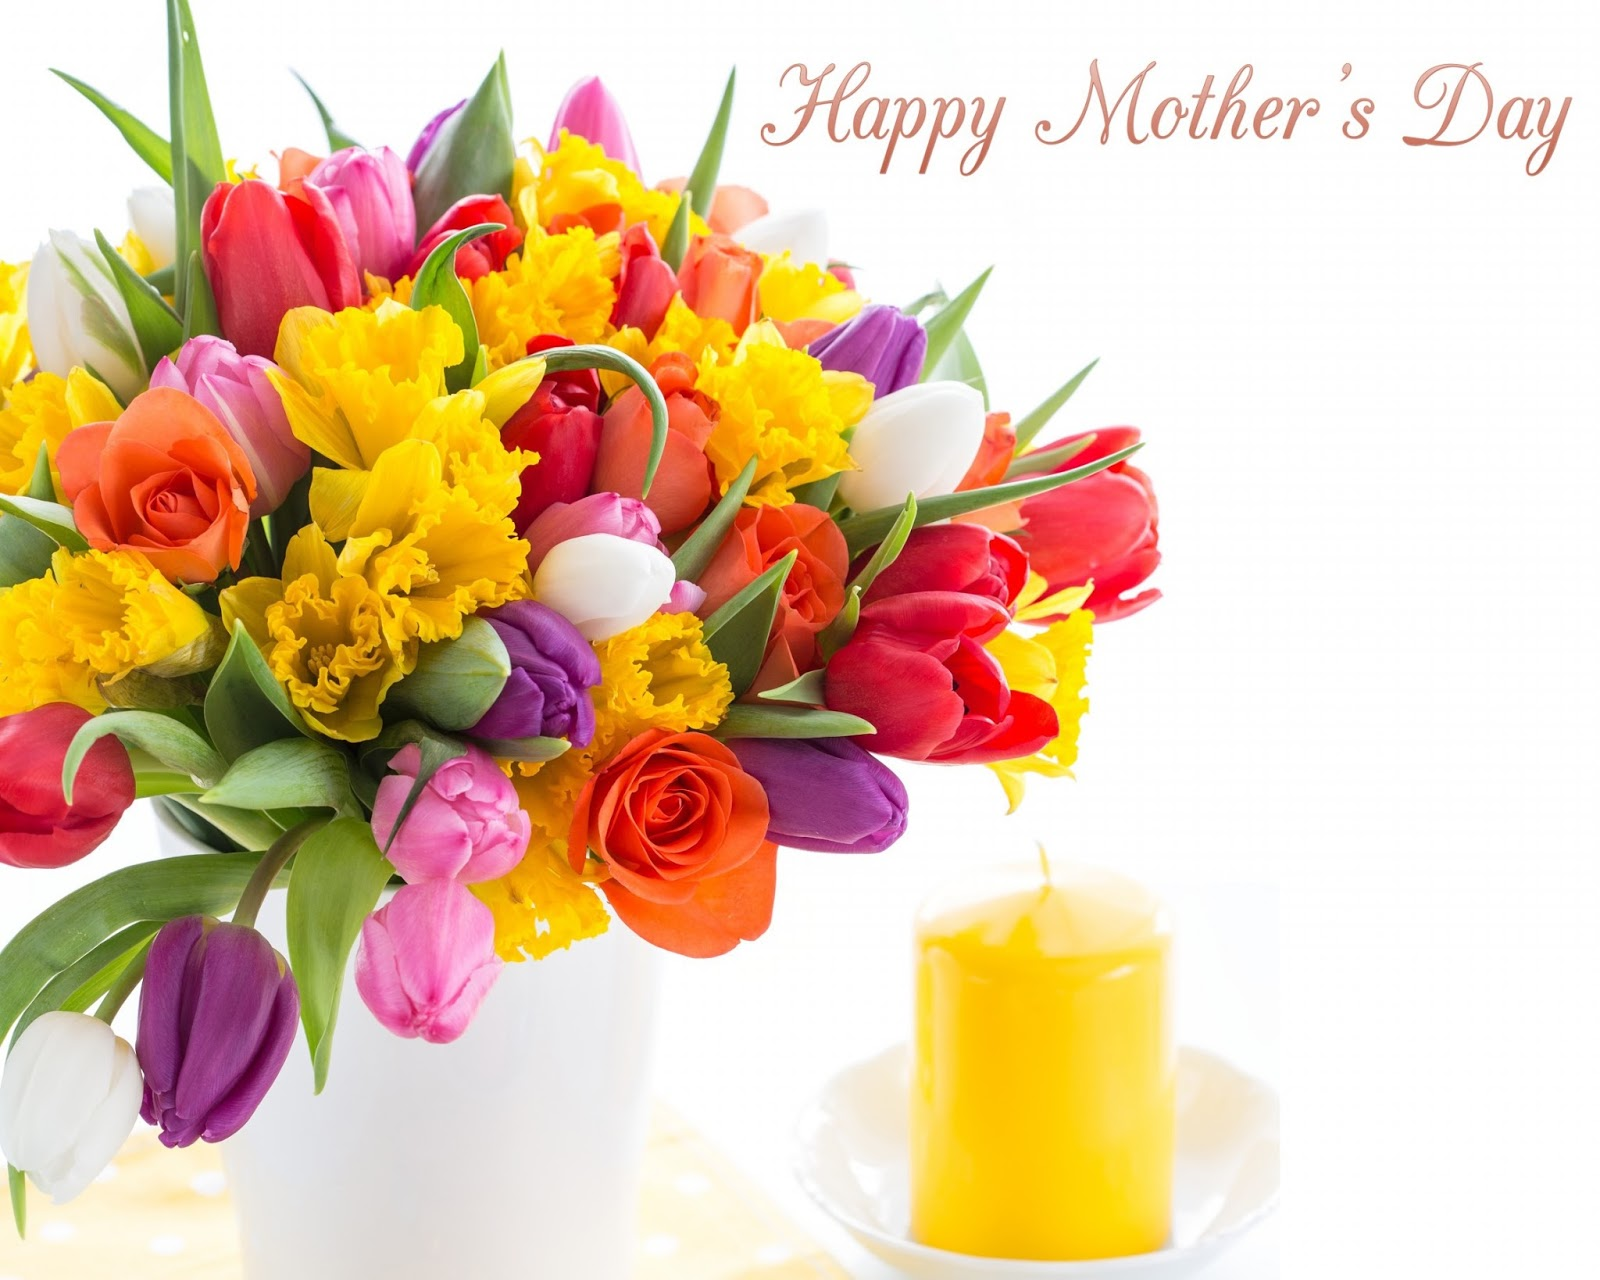 Happy mothers day images greetings cards wishes quotes mothers day pictures to draw kristyandbryce Images